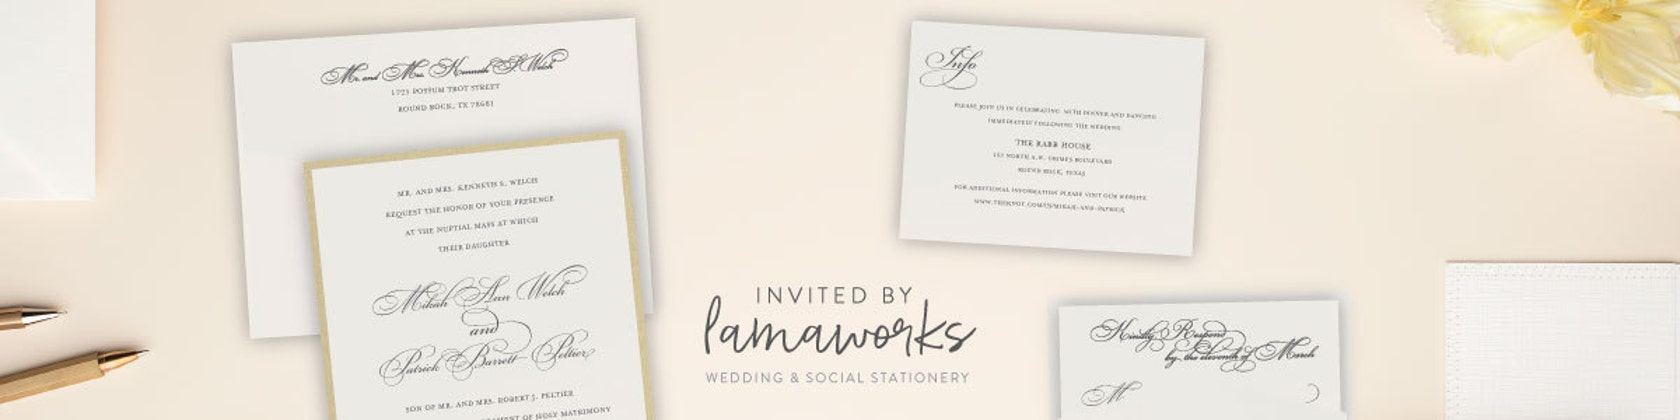 Custom Wedding Invitations & Stationery Gifts by LamaWorks on Etsy